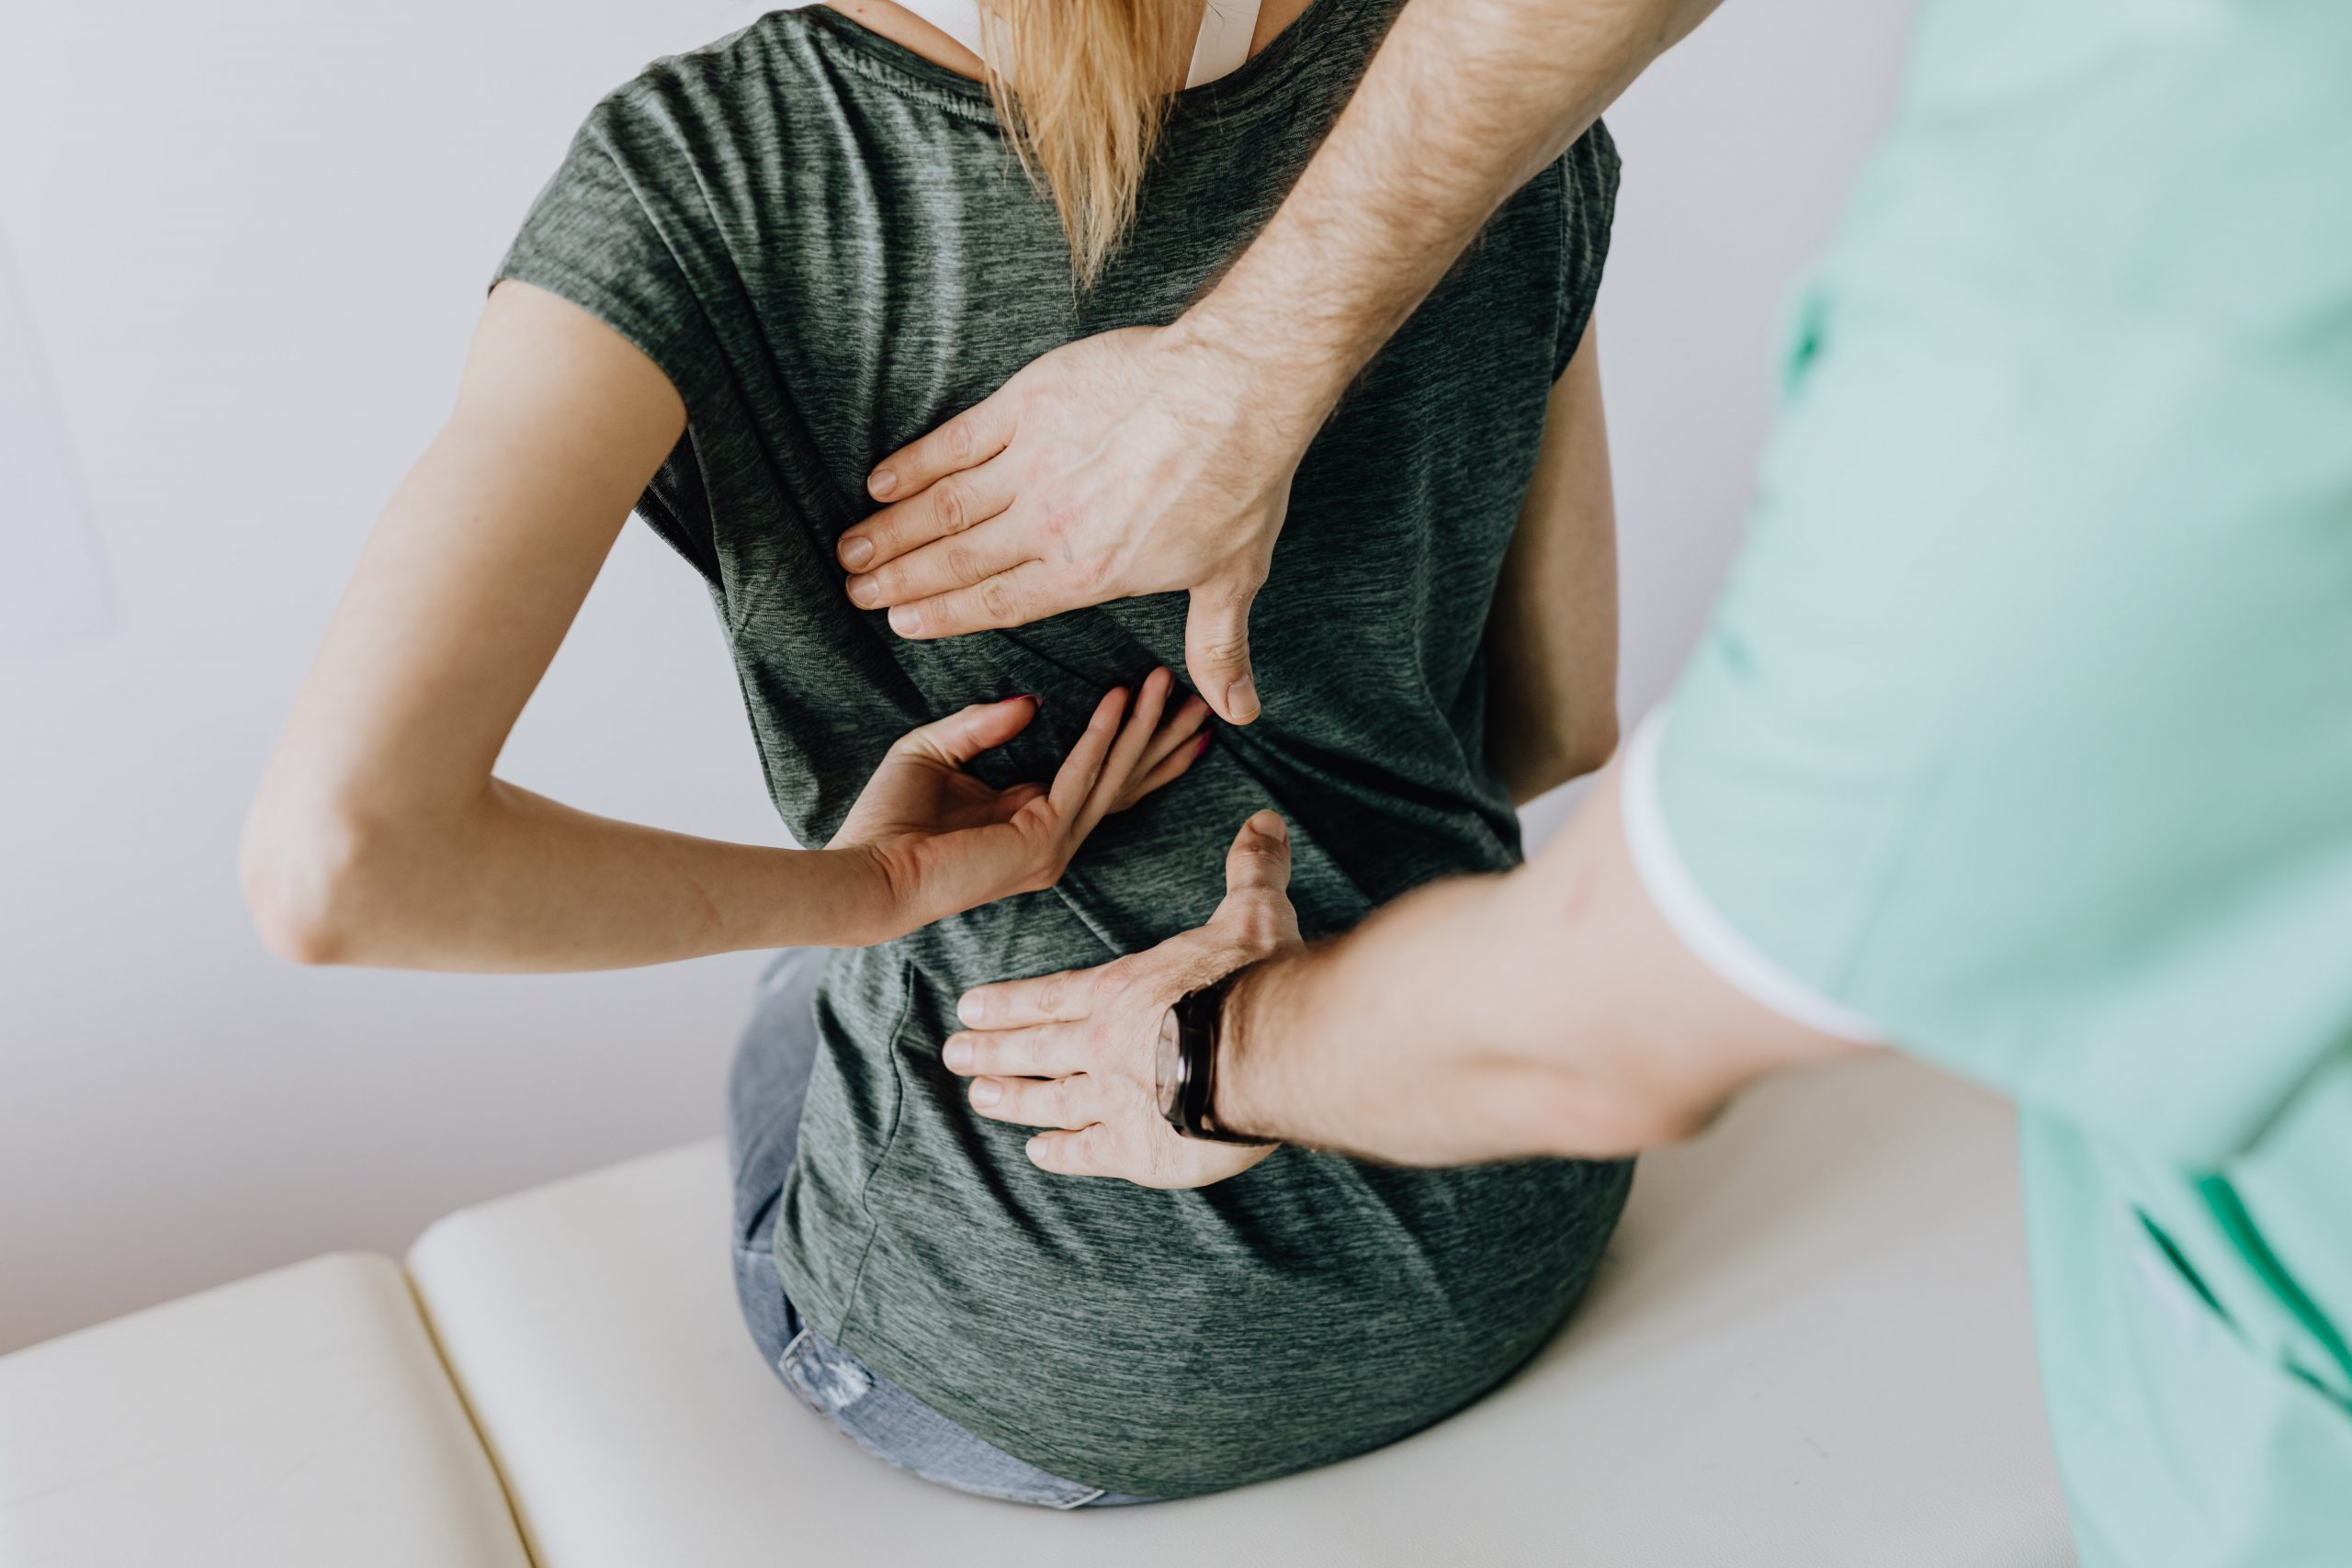 How Physiotherapy Became a Mainstream Treatment